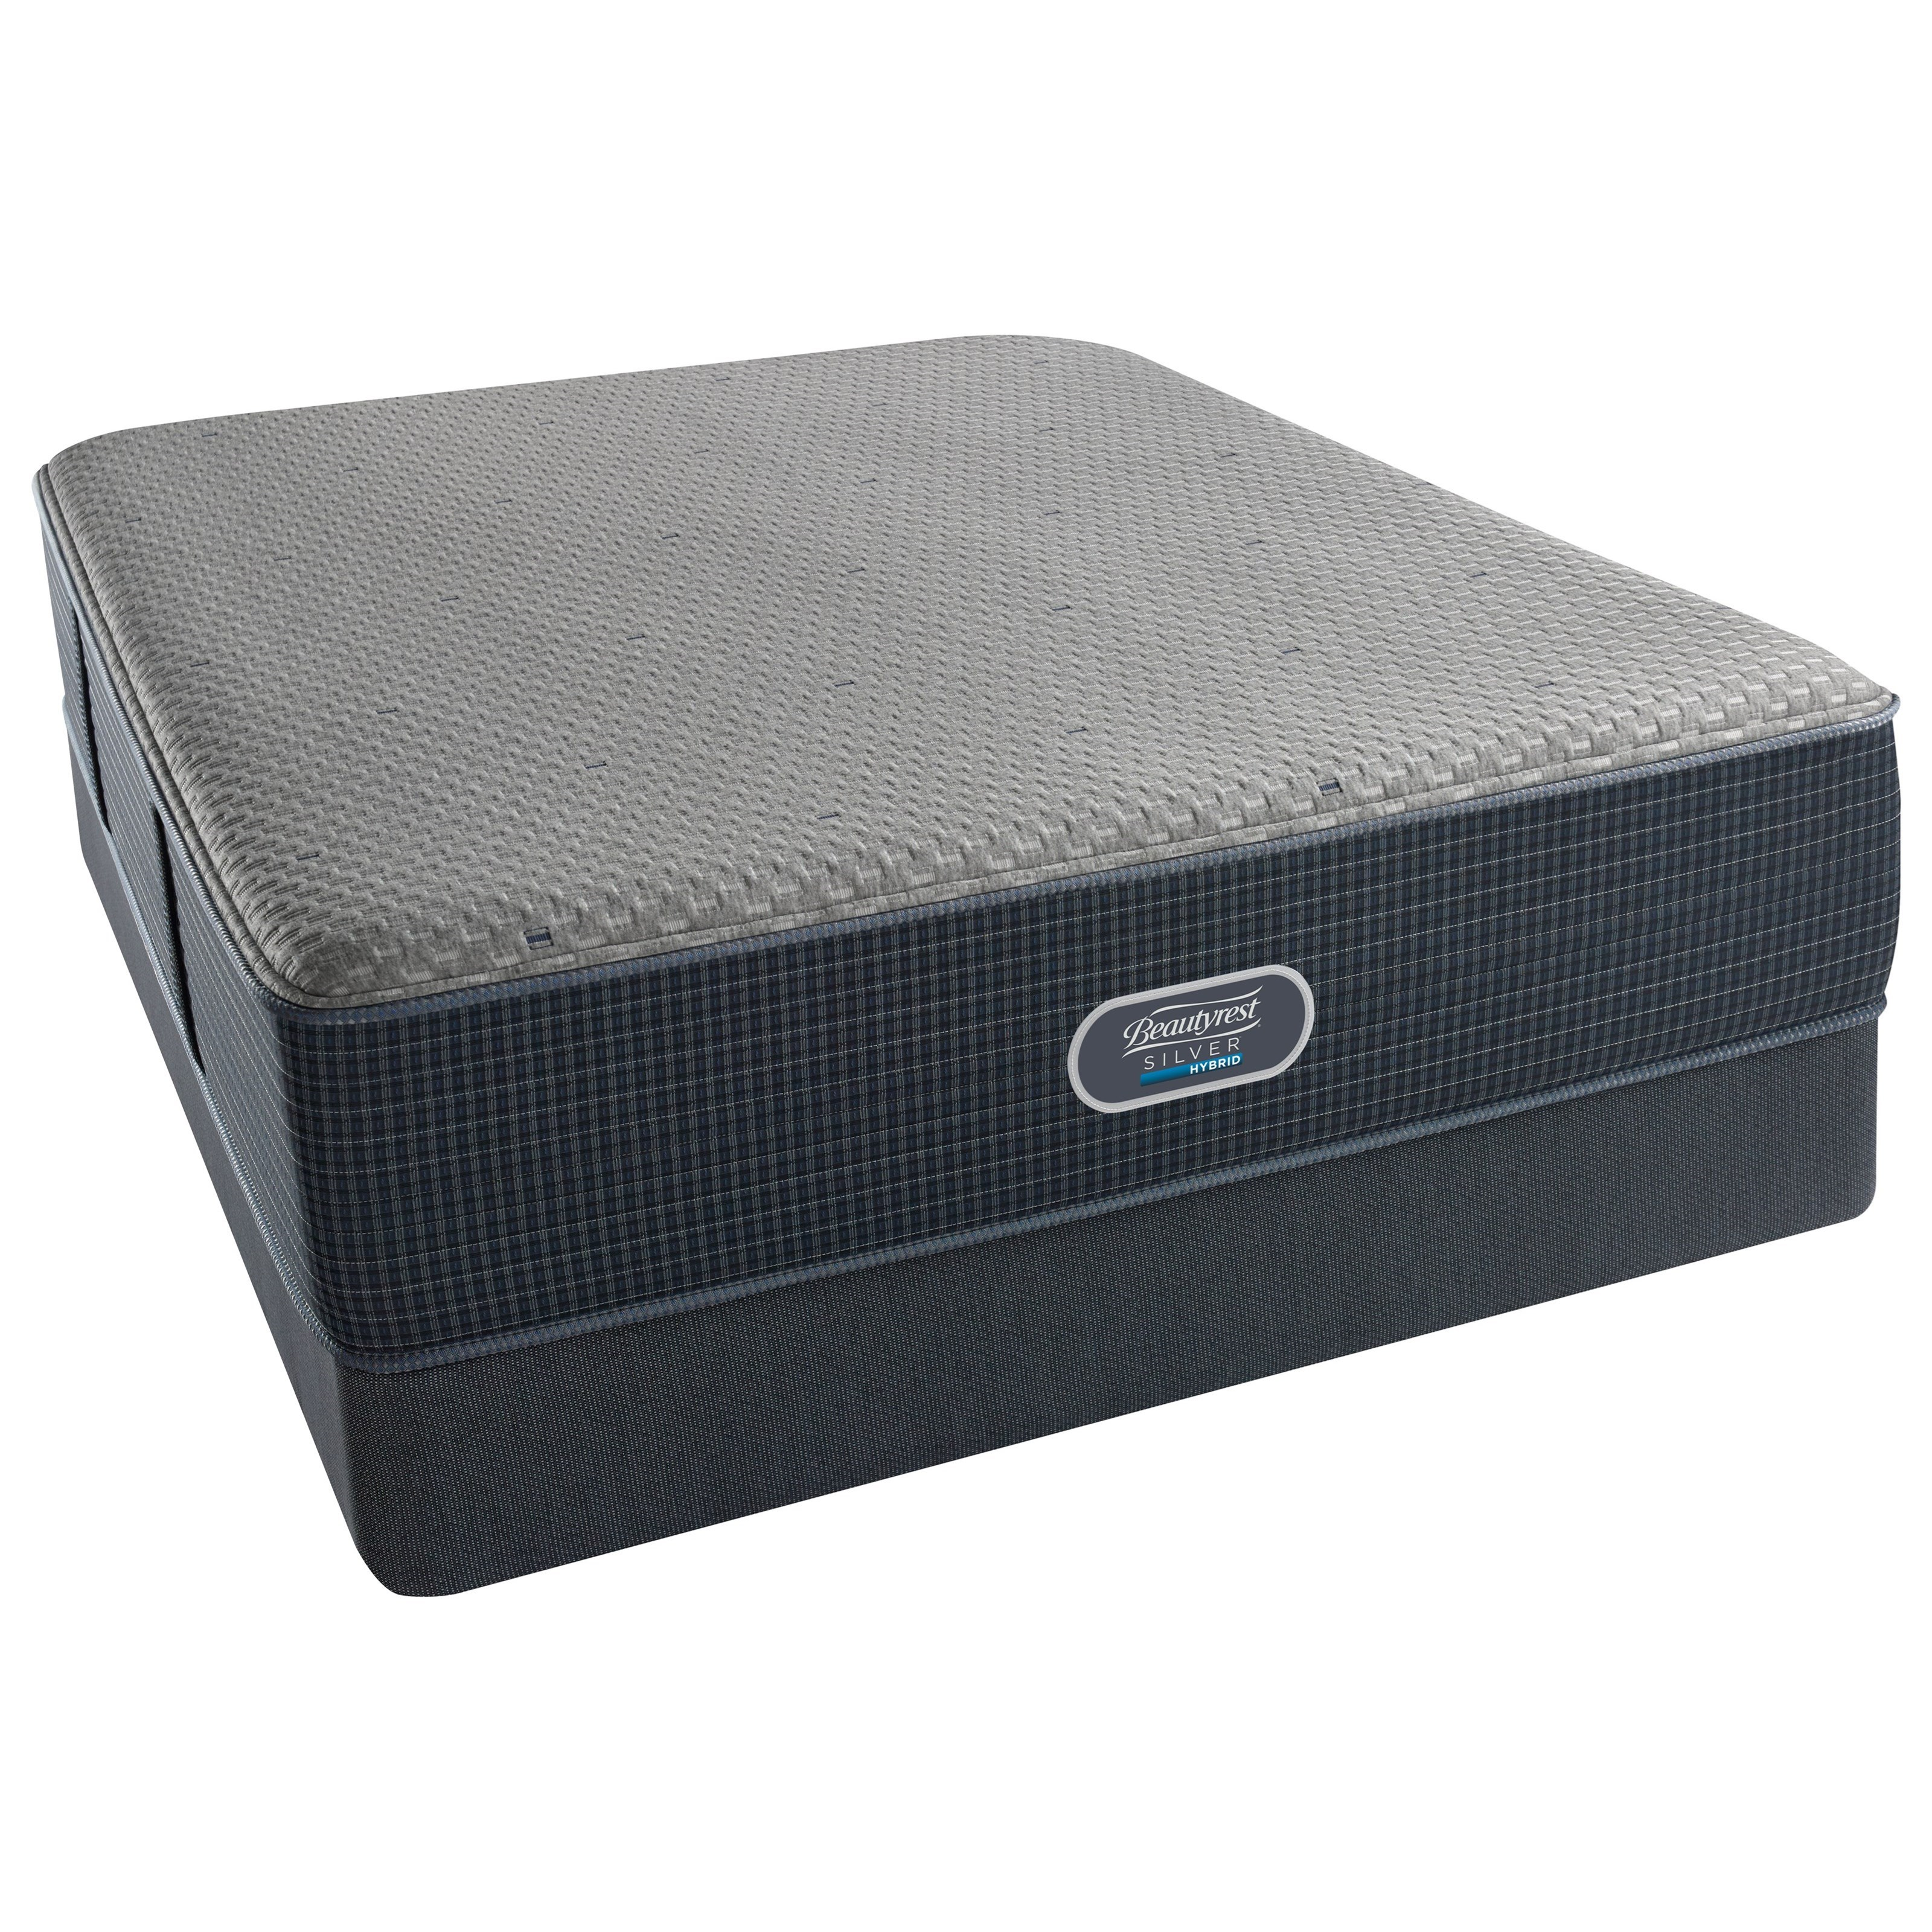 Beautyrest Silver Hybrid Harbour Beach Luxury Firm King Low Profile Set - Item Number: 700601004-1060+2x700600254-6020